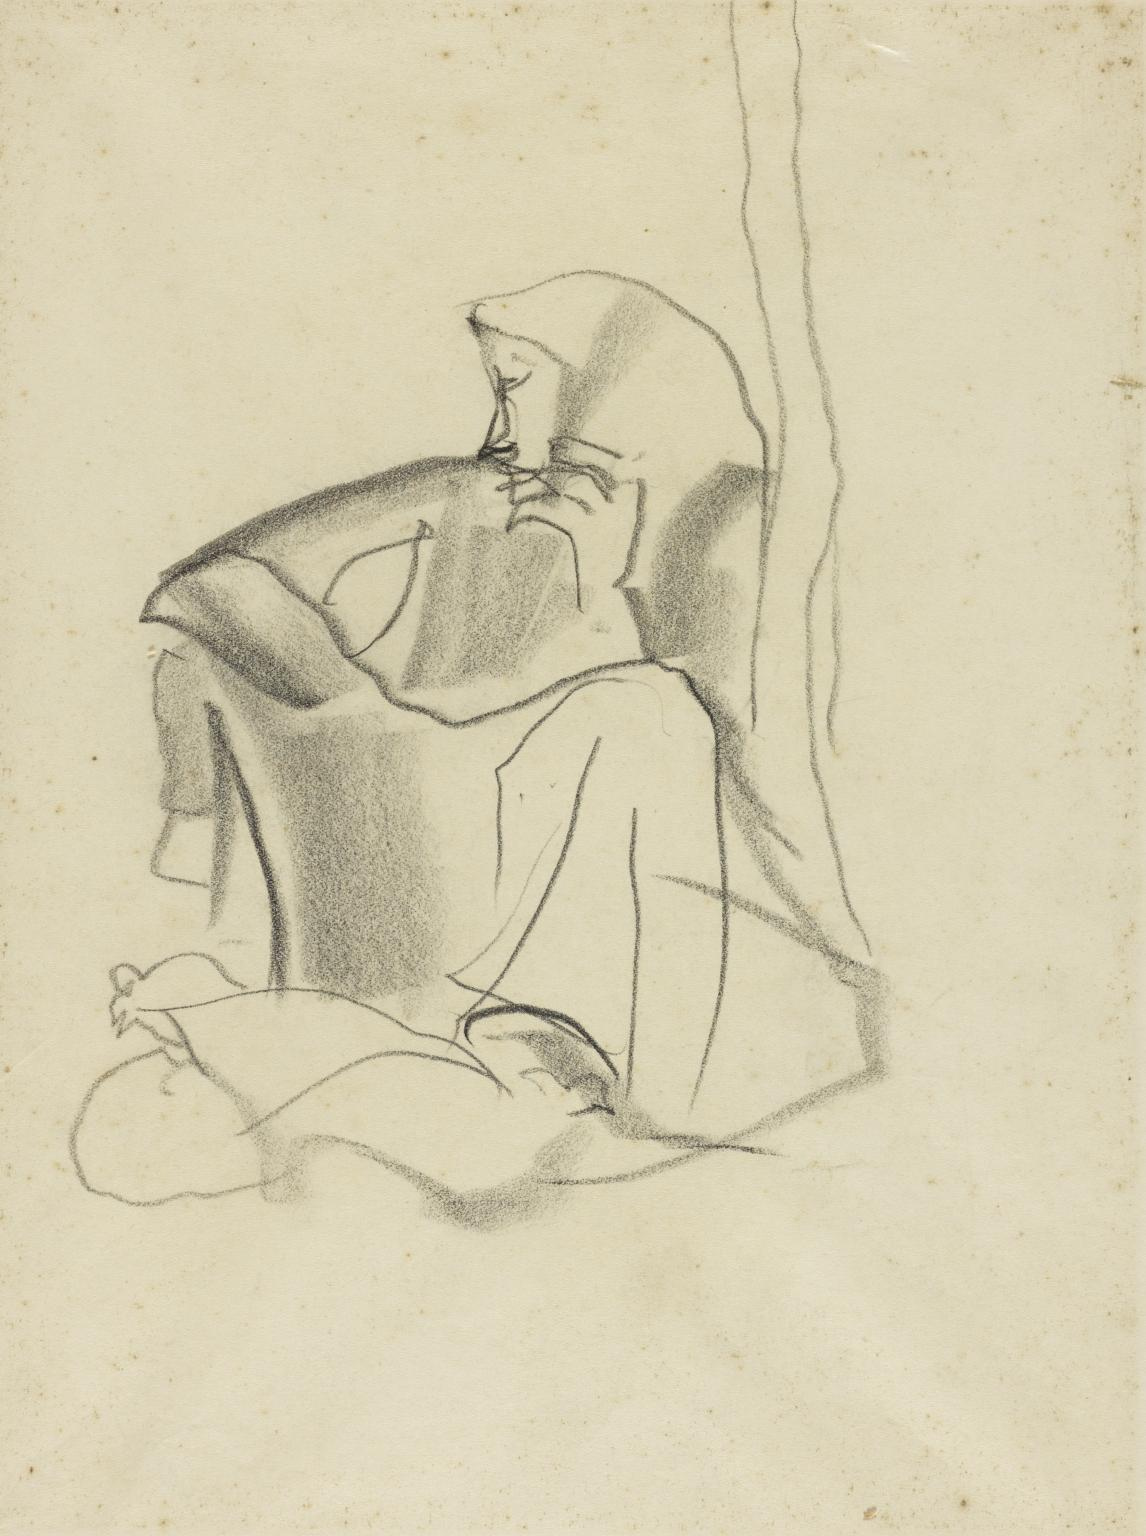 1146x1536 Sketch Of A Woman In A Headscarf Sitting Down And Leaning Against